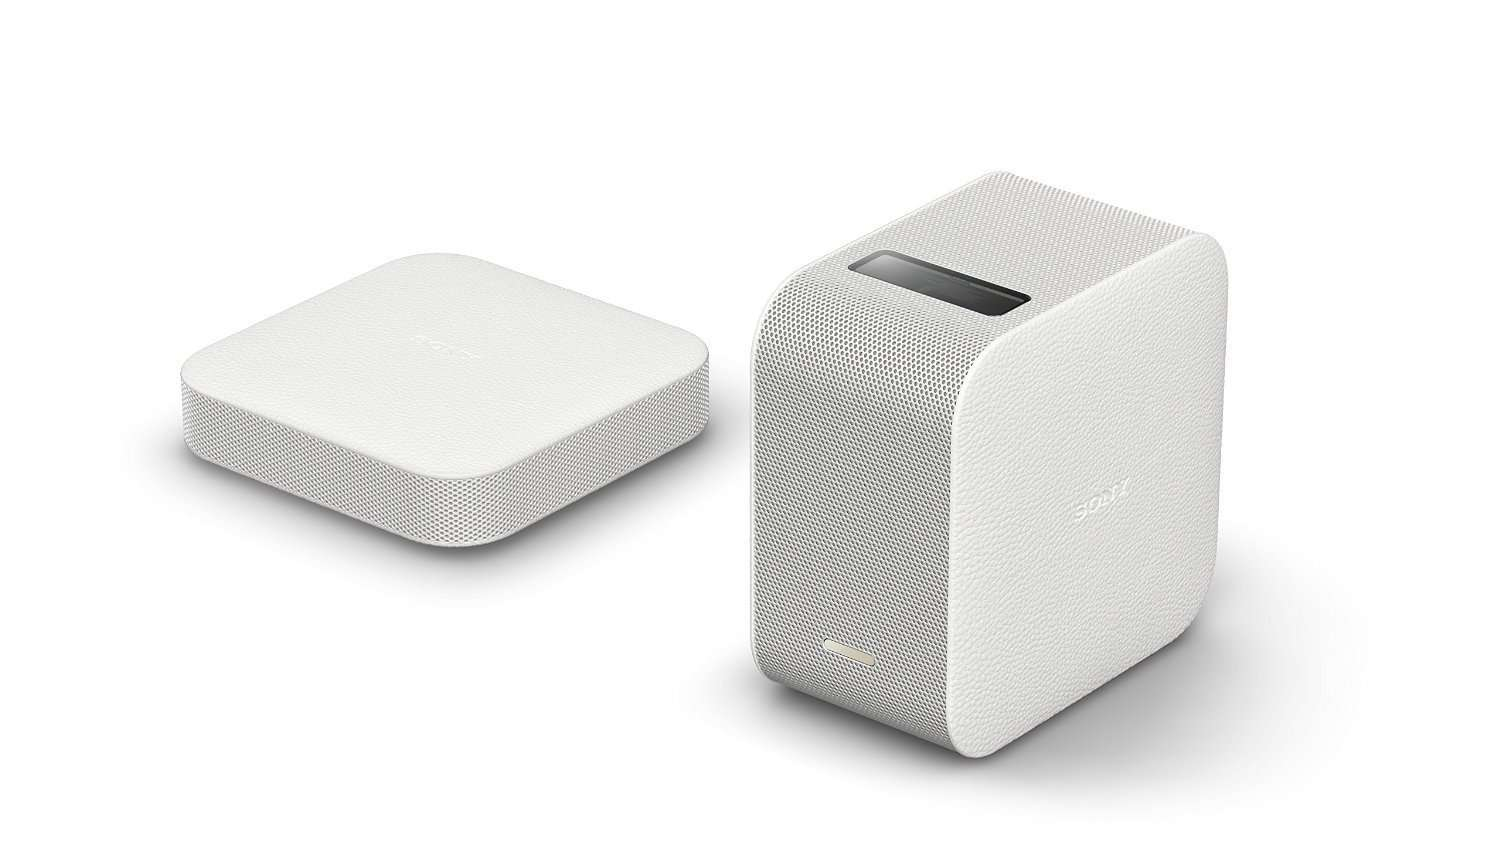 Sony LSPX-P1 Review – Portable Ultra Short Throw Projector